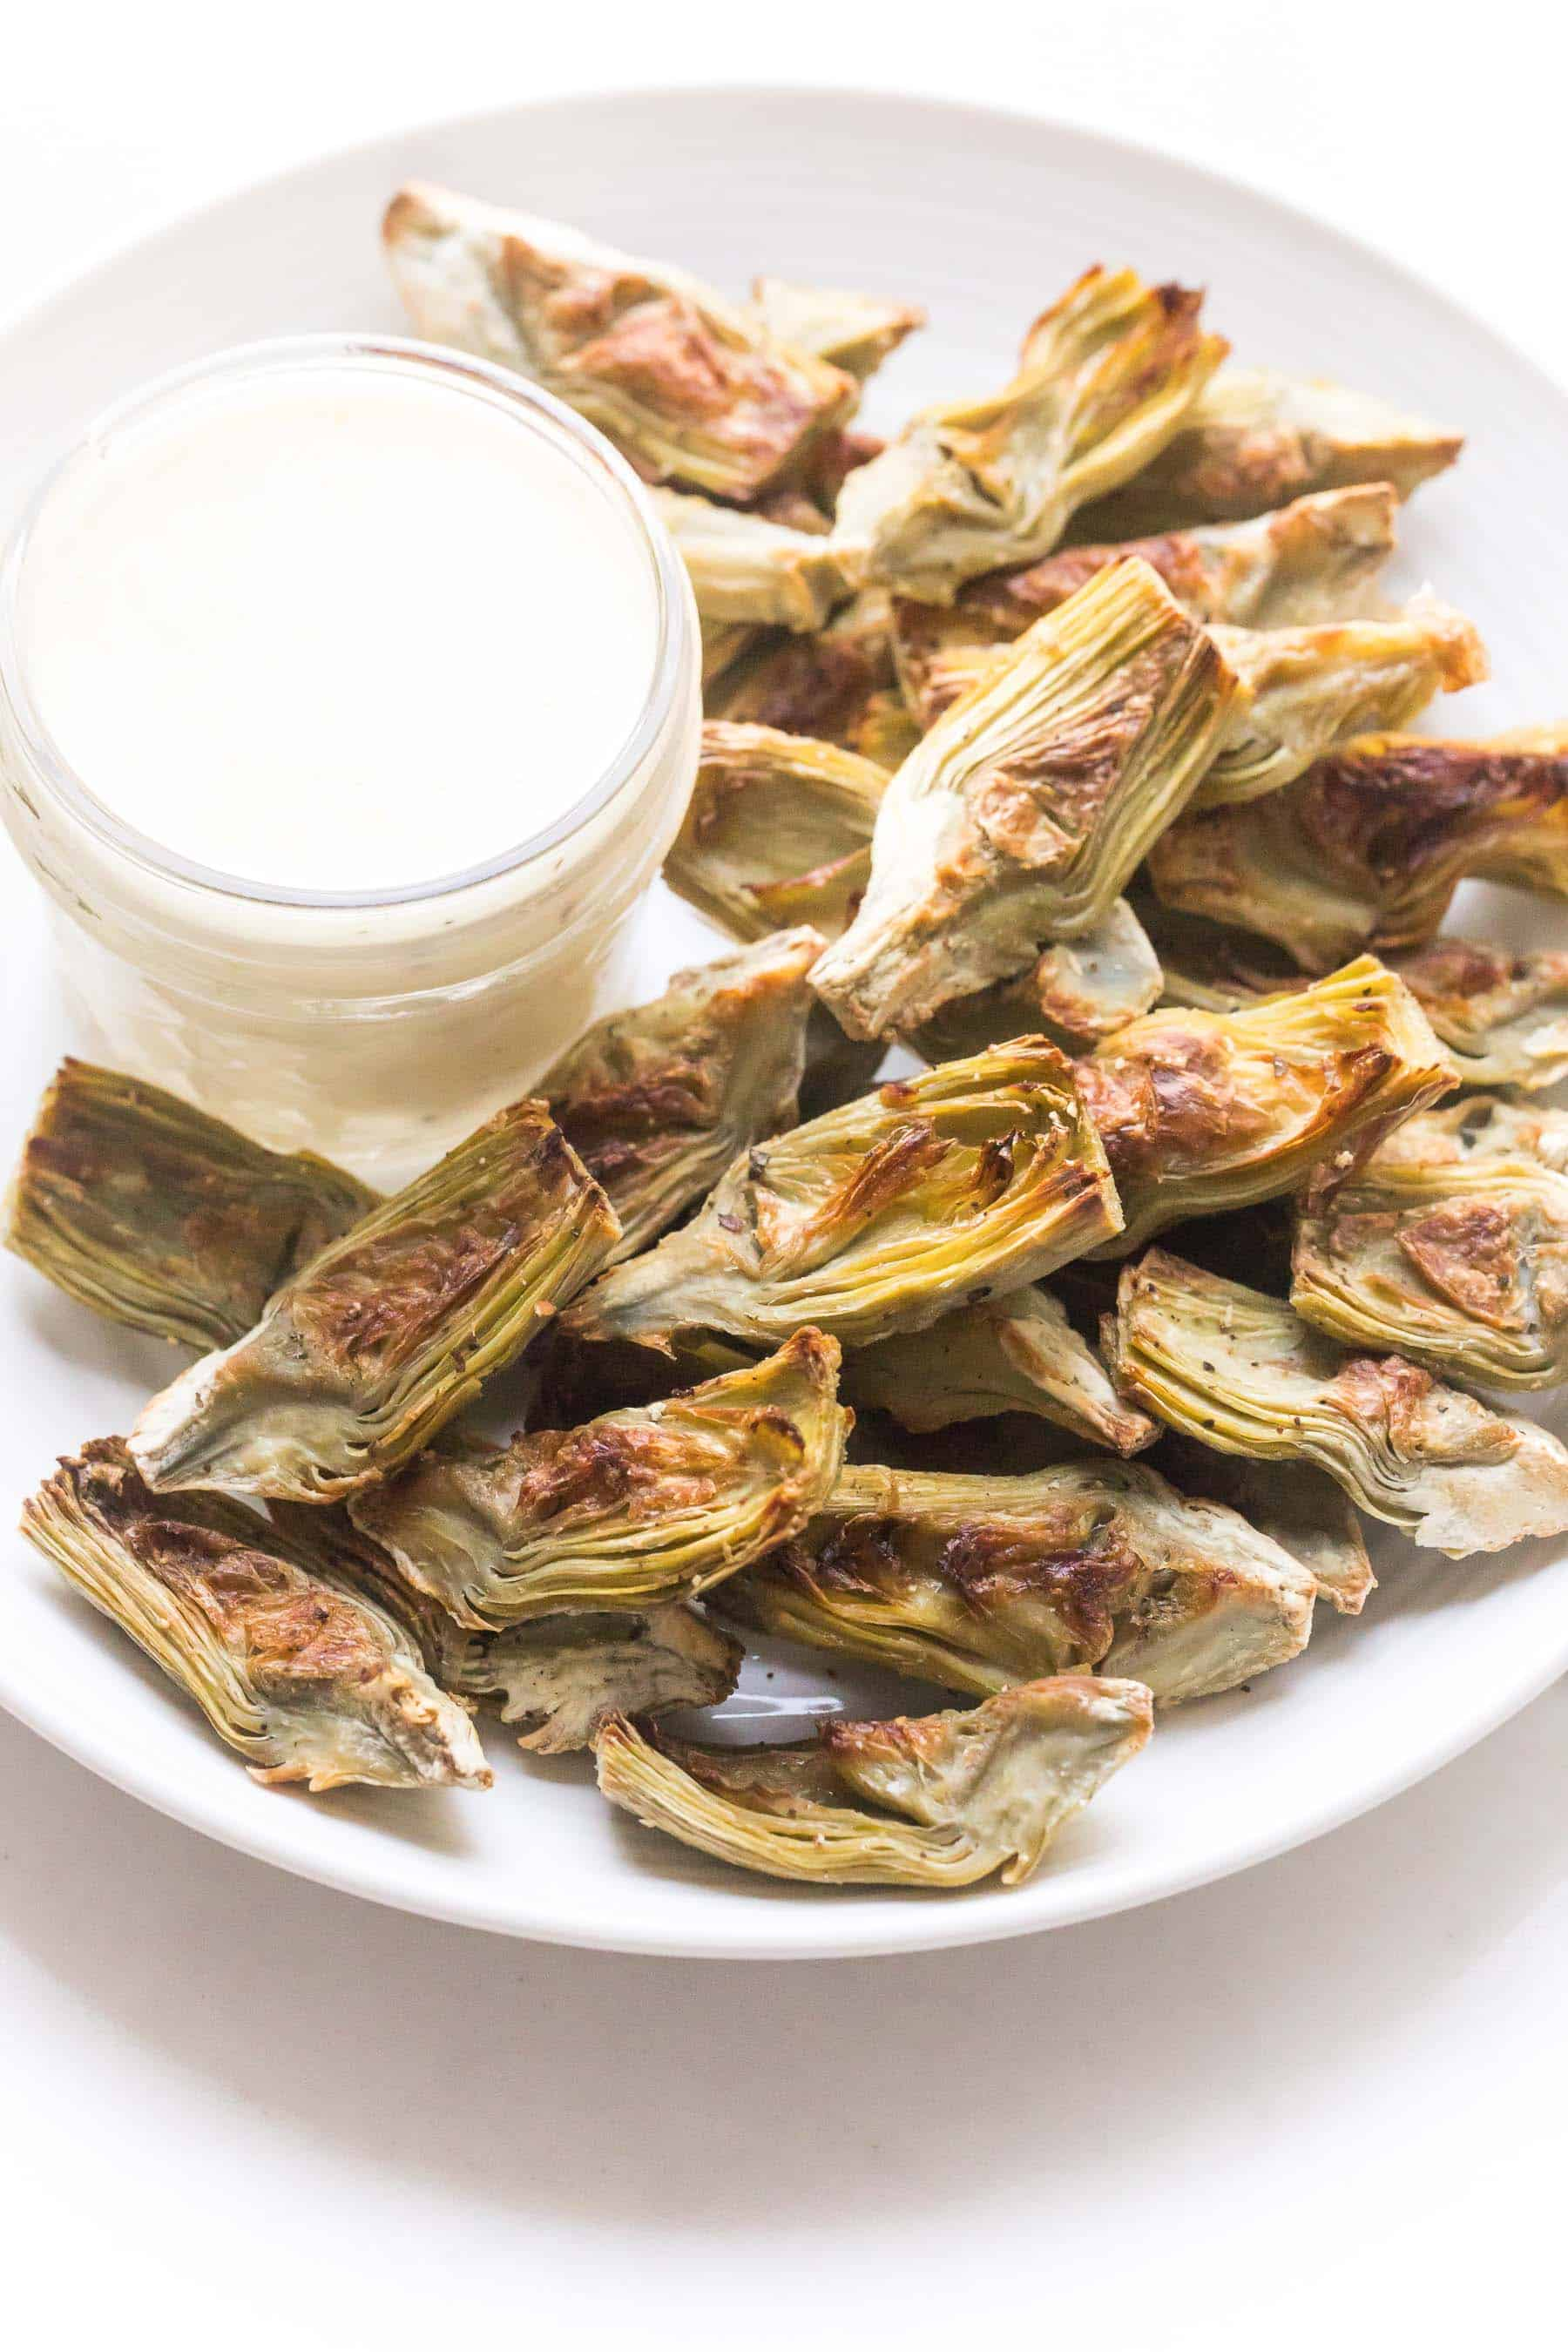 Roasted artichokes on a white plate with white lemon garlic aioli dipping sauce on a white background